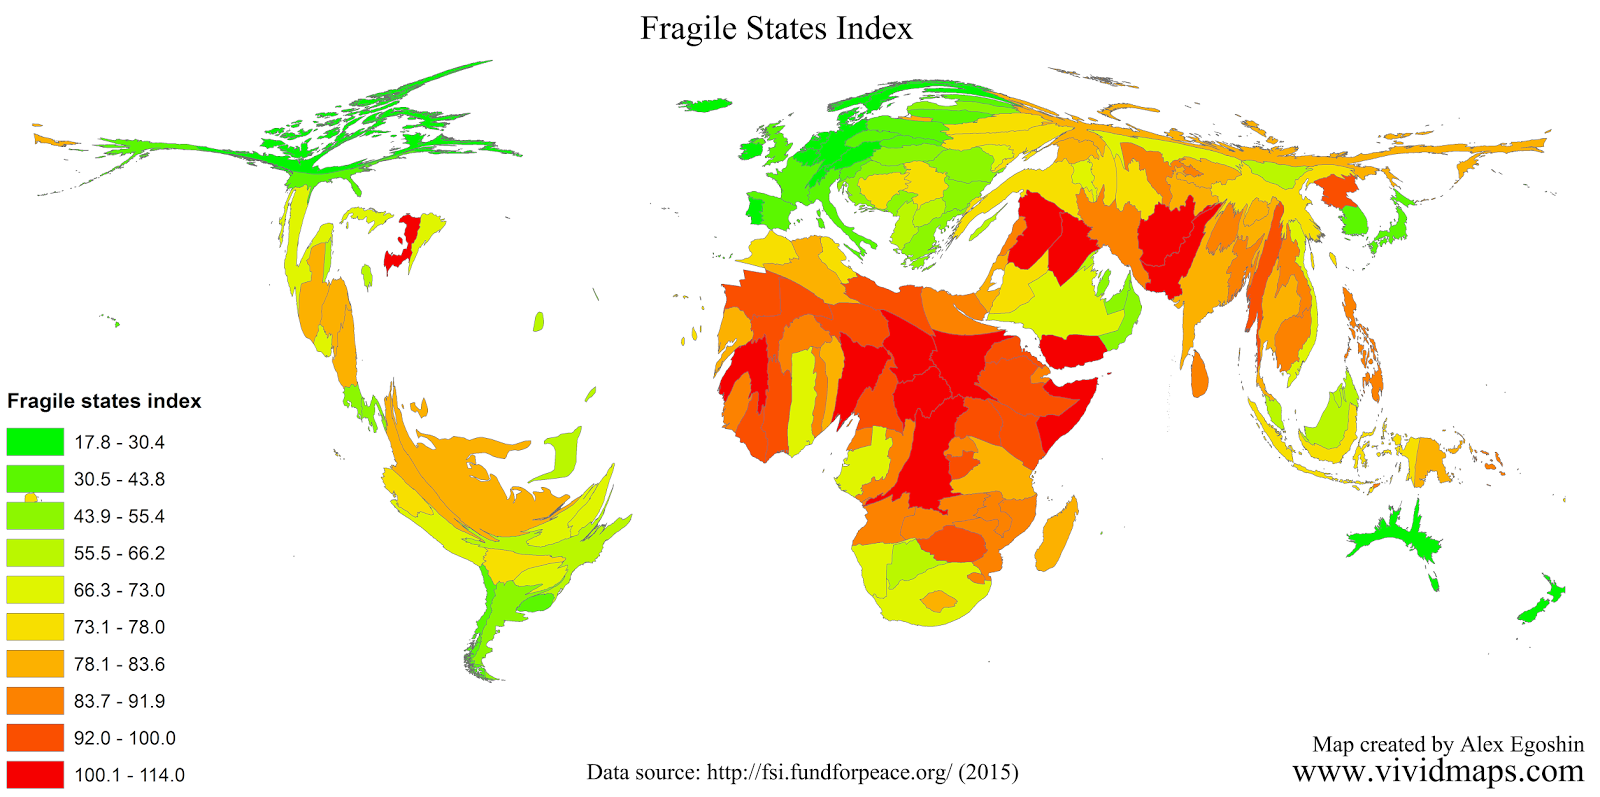 Fragile States Index (2015)